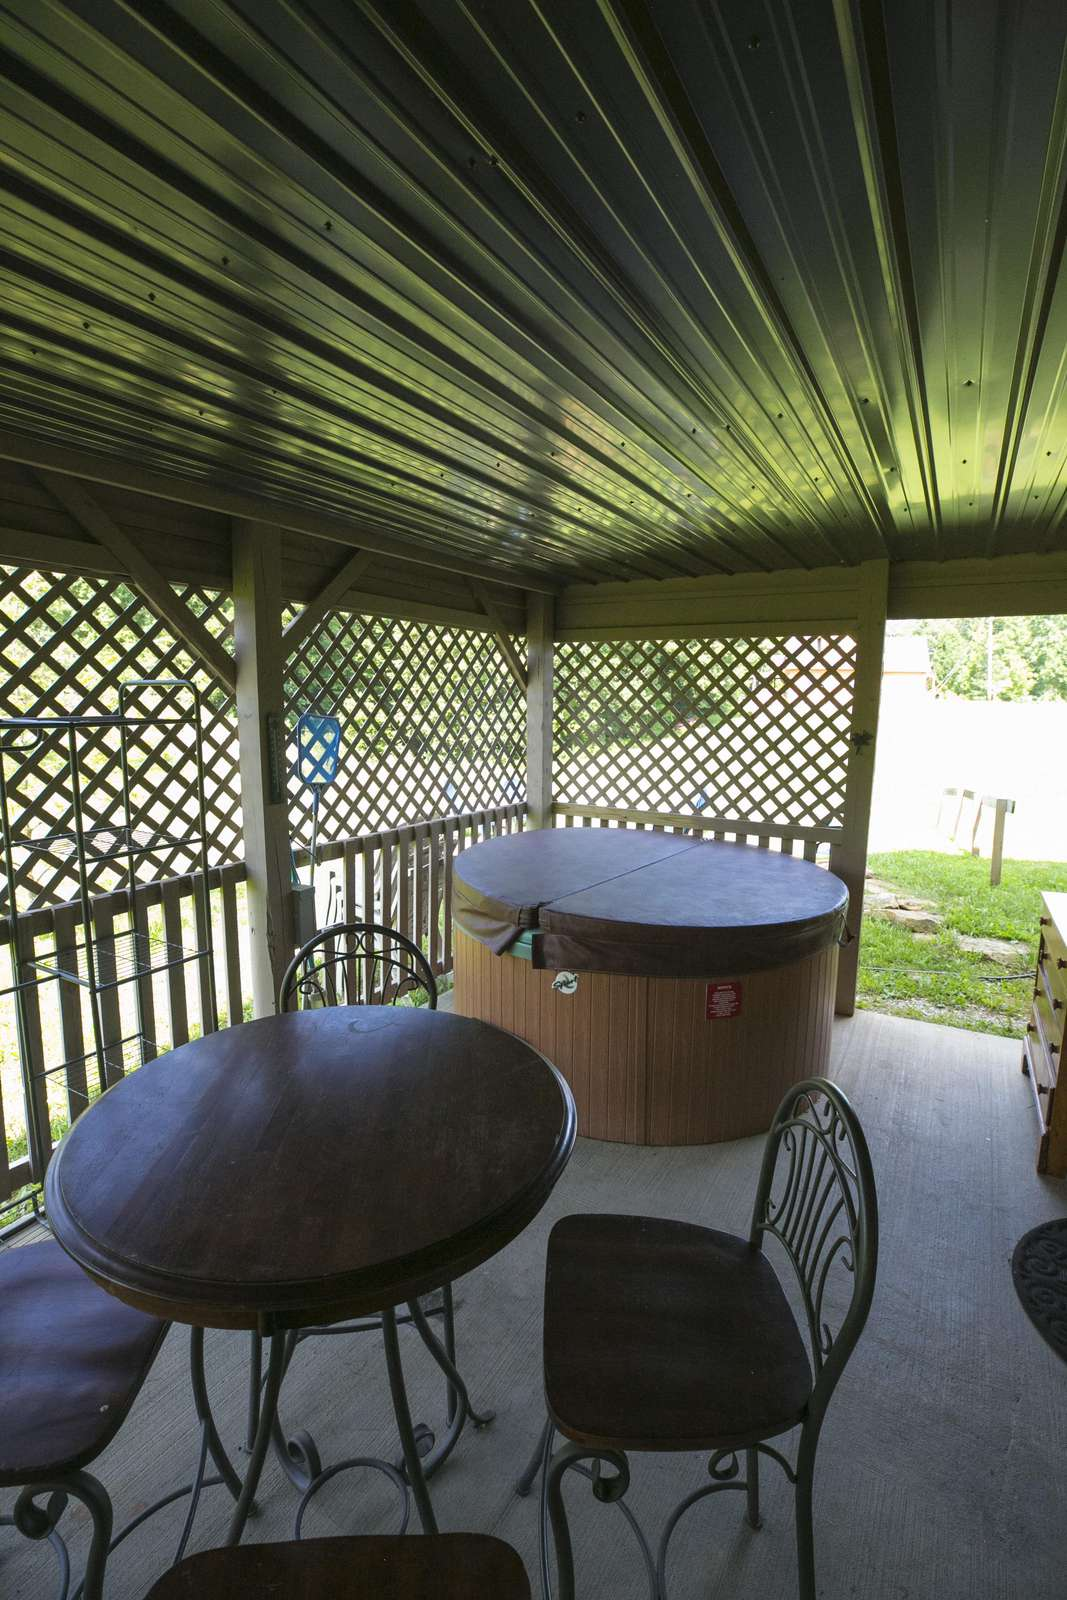 basement patio with hot tub and charcoal grill